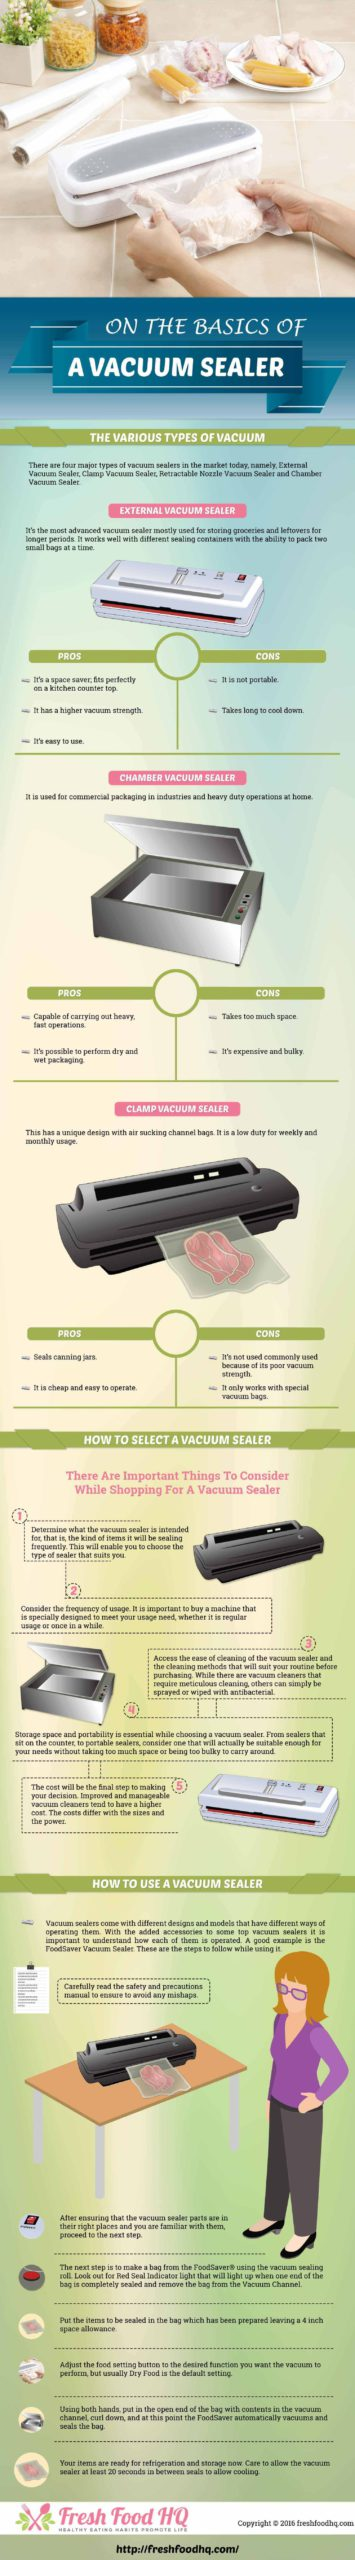 Vacuum Sealer Infographic